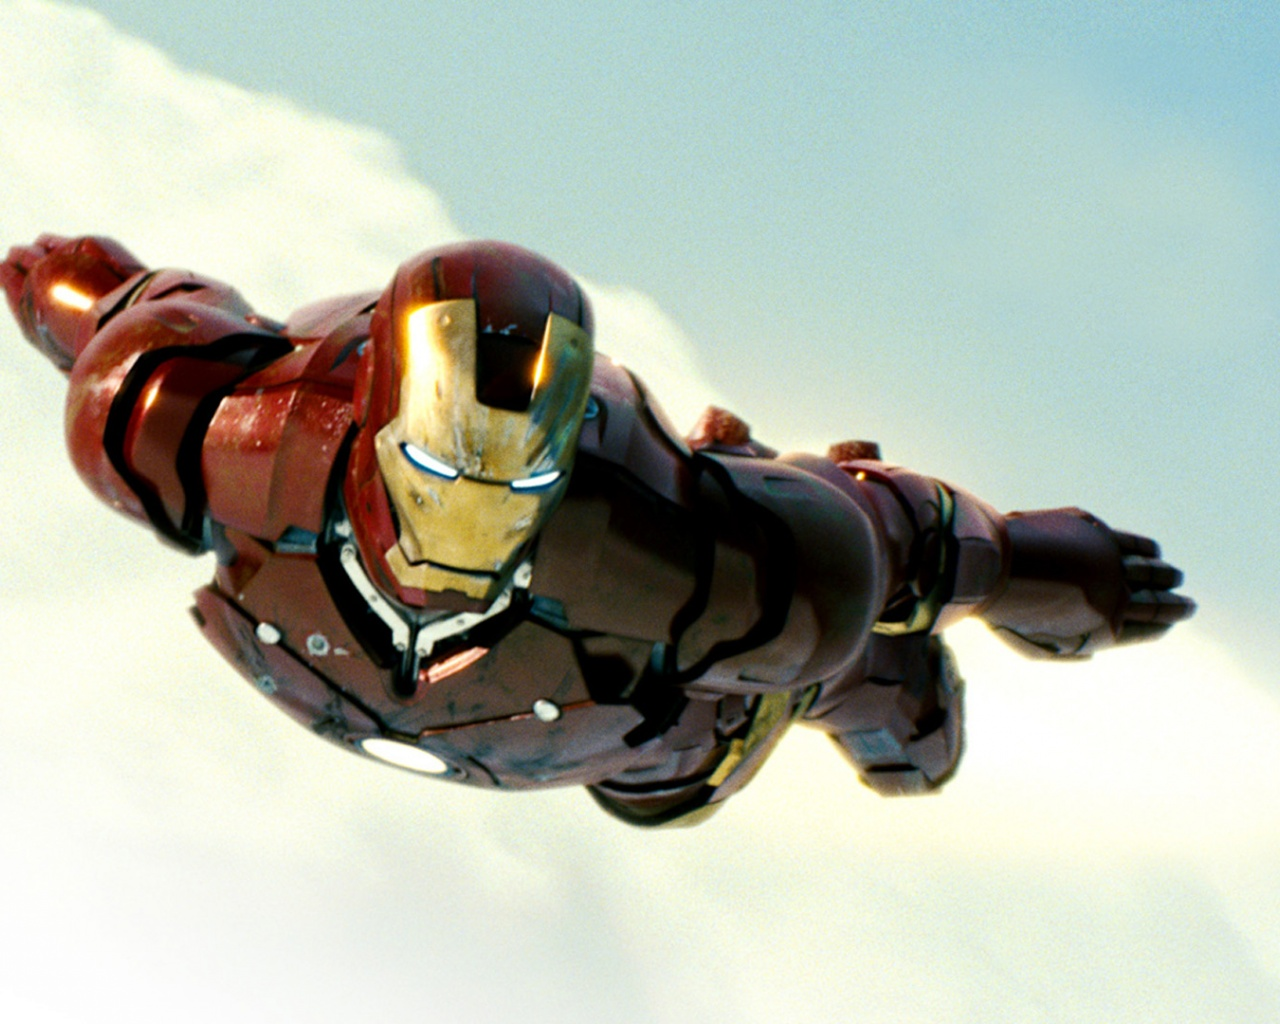 click to free download the wallpaper--Amazing TV Shows Pic, Iron Man Flying, He is Injured, Yet Never Stop Moving Forward 1280X1024 free wallpaper download